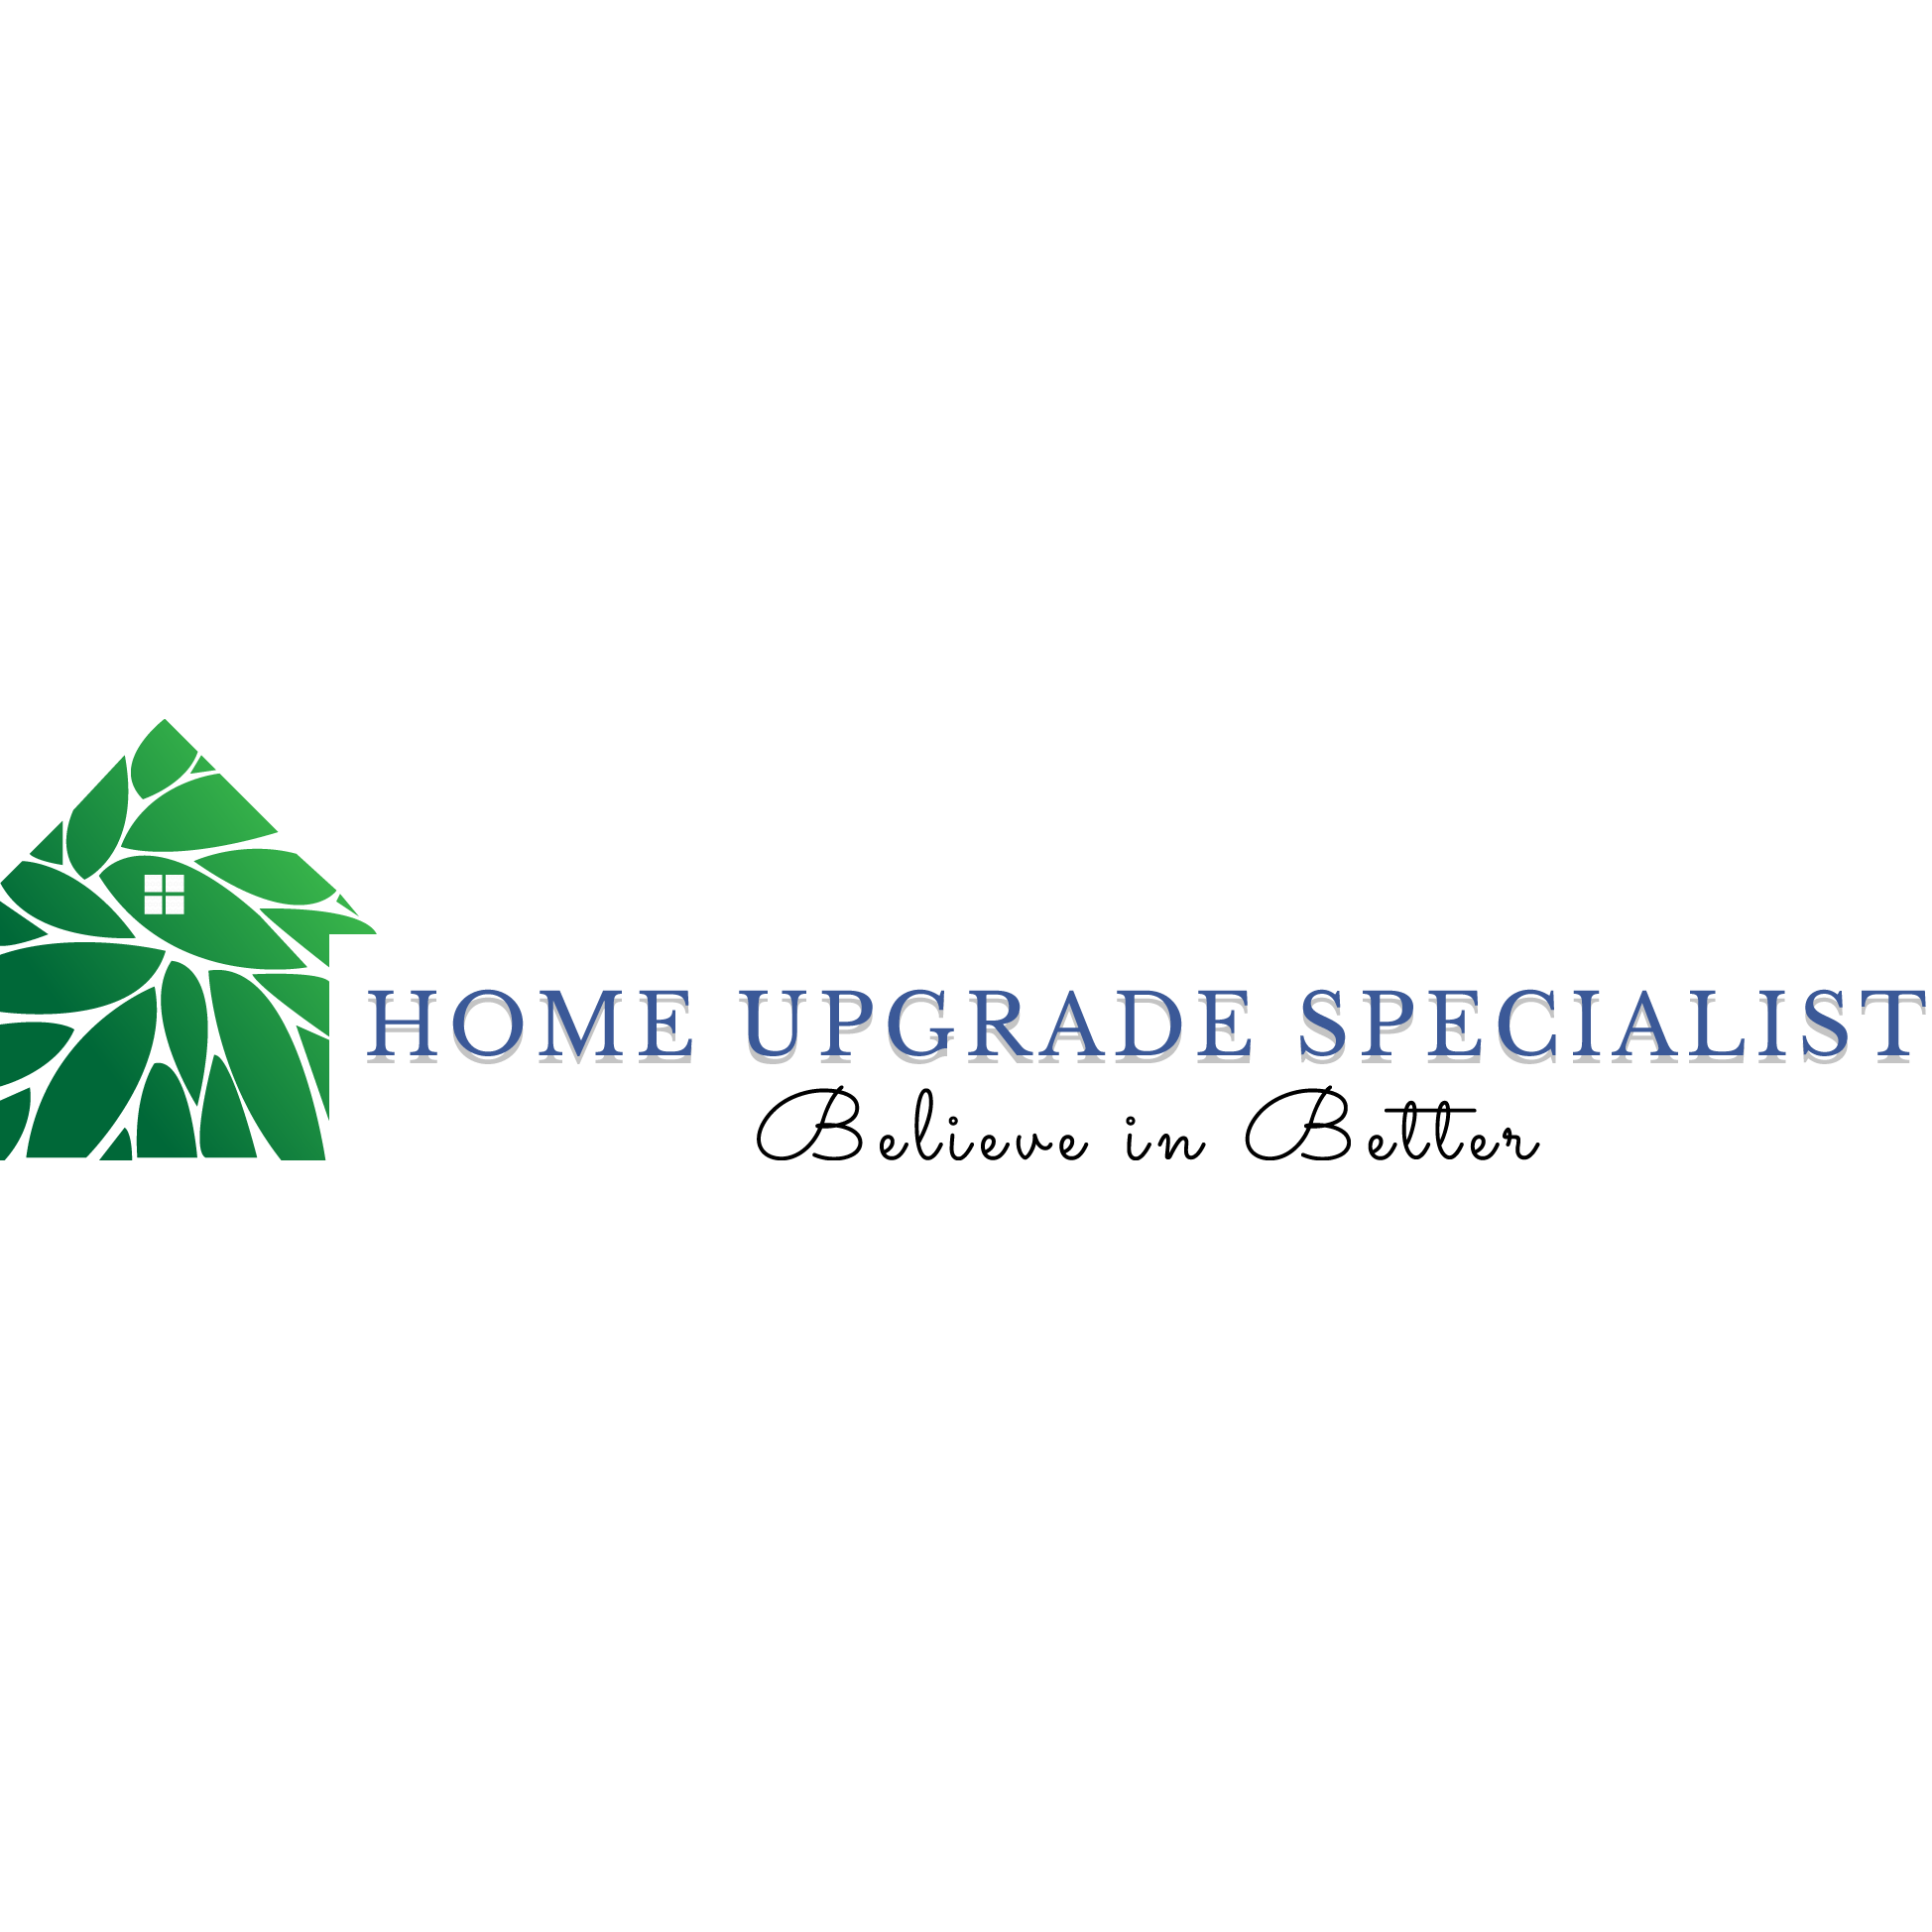 image of the Home Upgrade Specialist